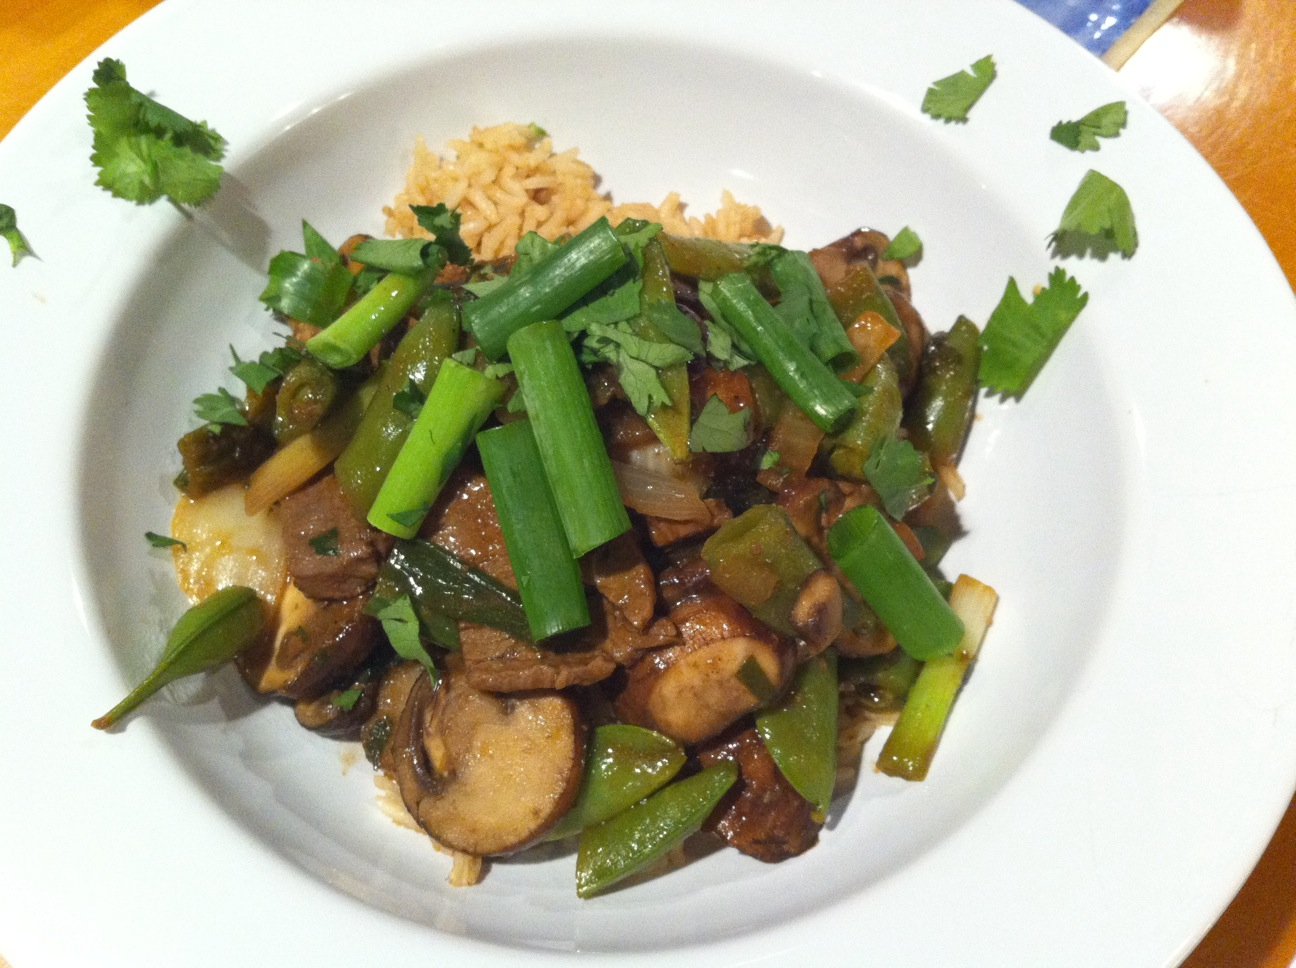 ... : Spicy Beef Tenderloin and Mushroom Stir Fry with Hoisin and Ginger